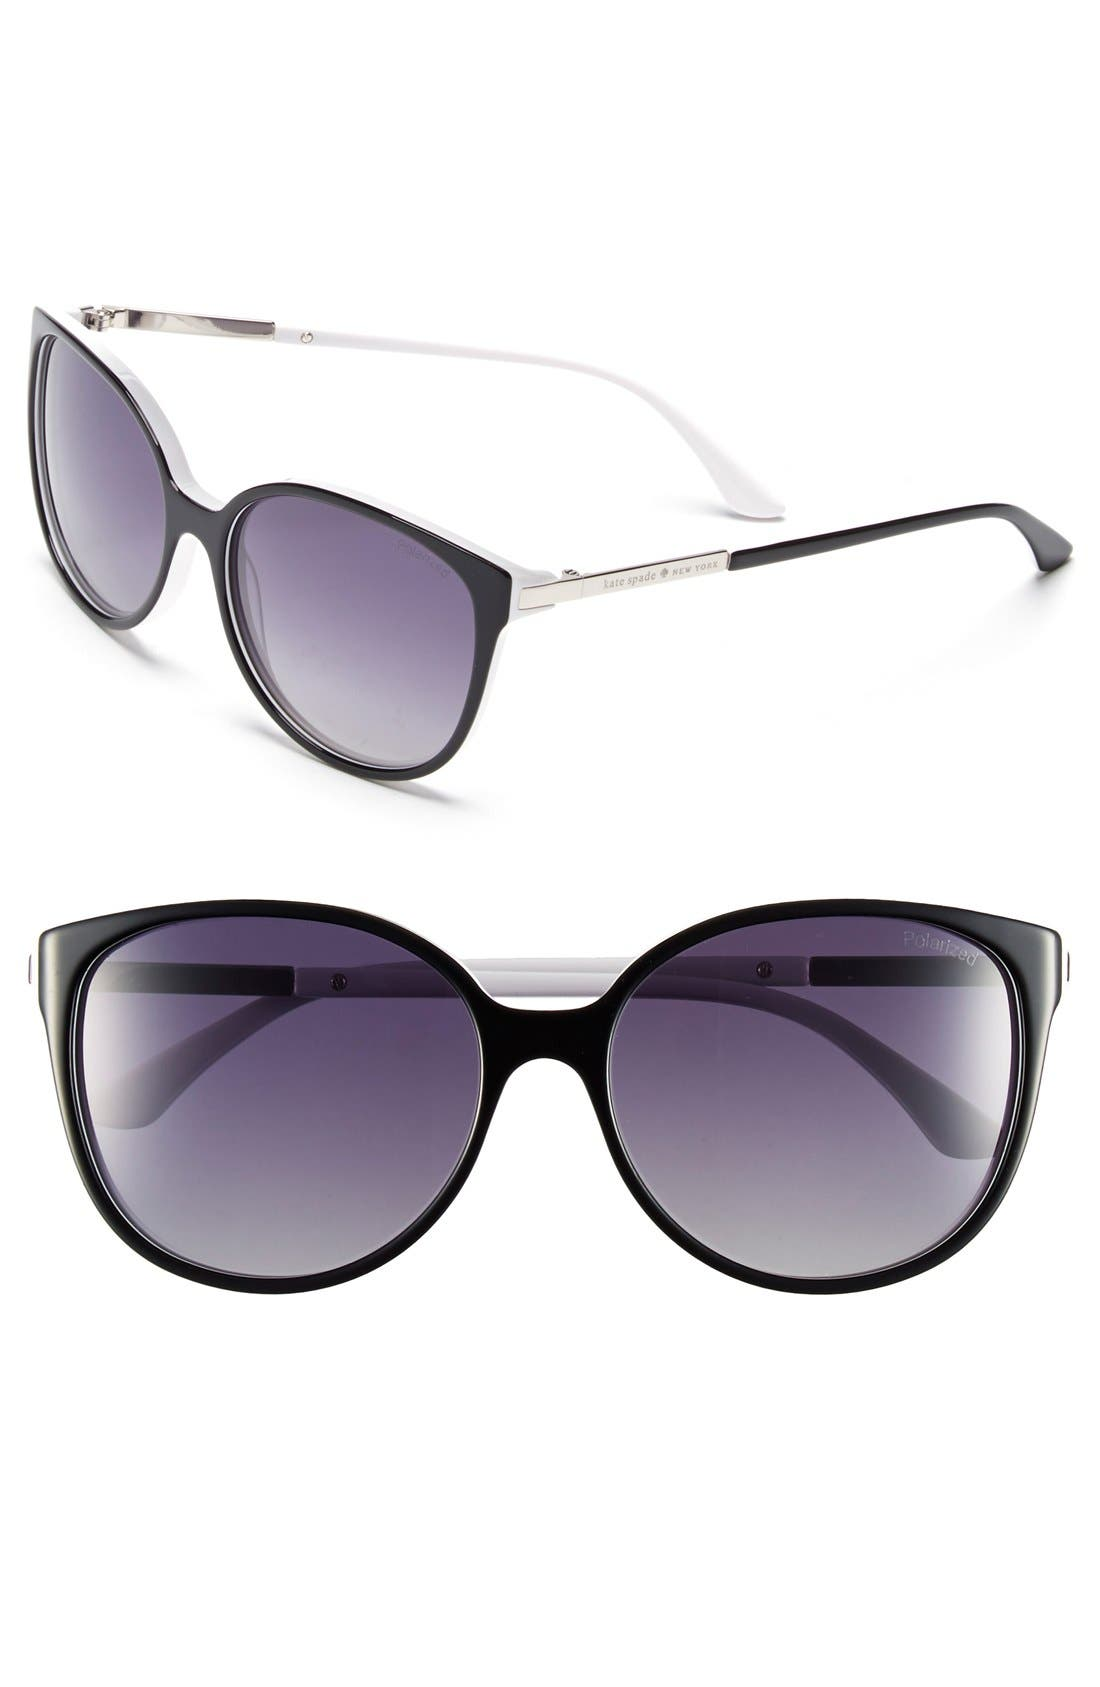 Alternate Image 1 Selected - kate spade new york 'shawna' 56mm polarized sunglasses (Nordstrom Exclusive)